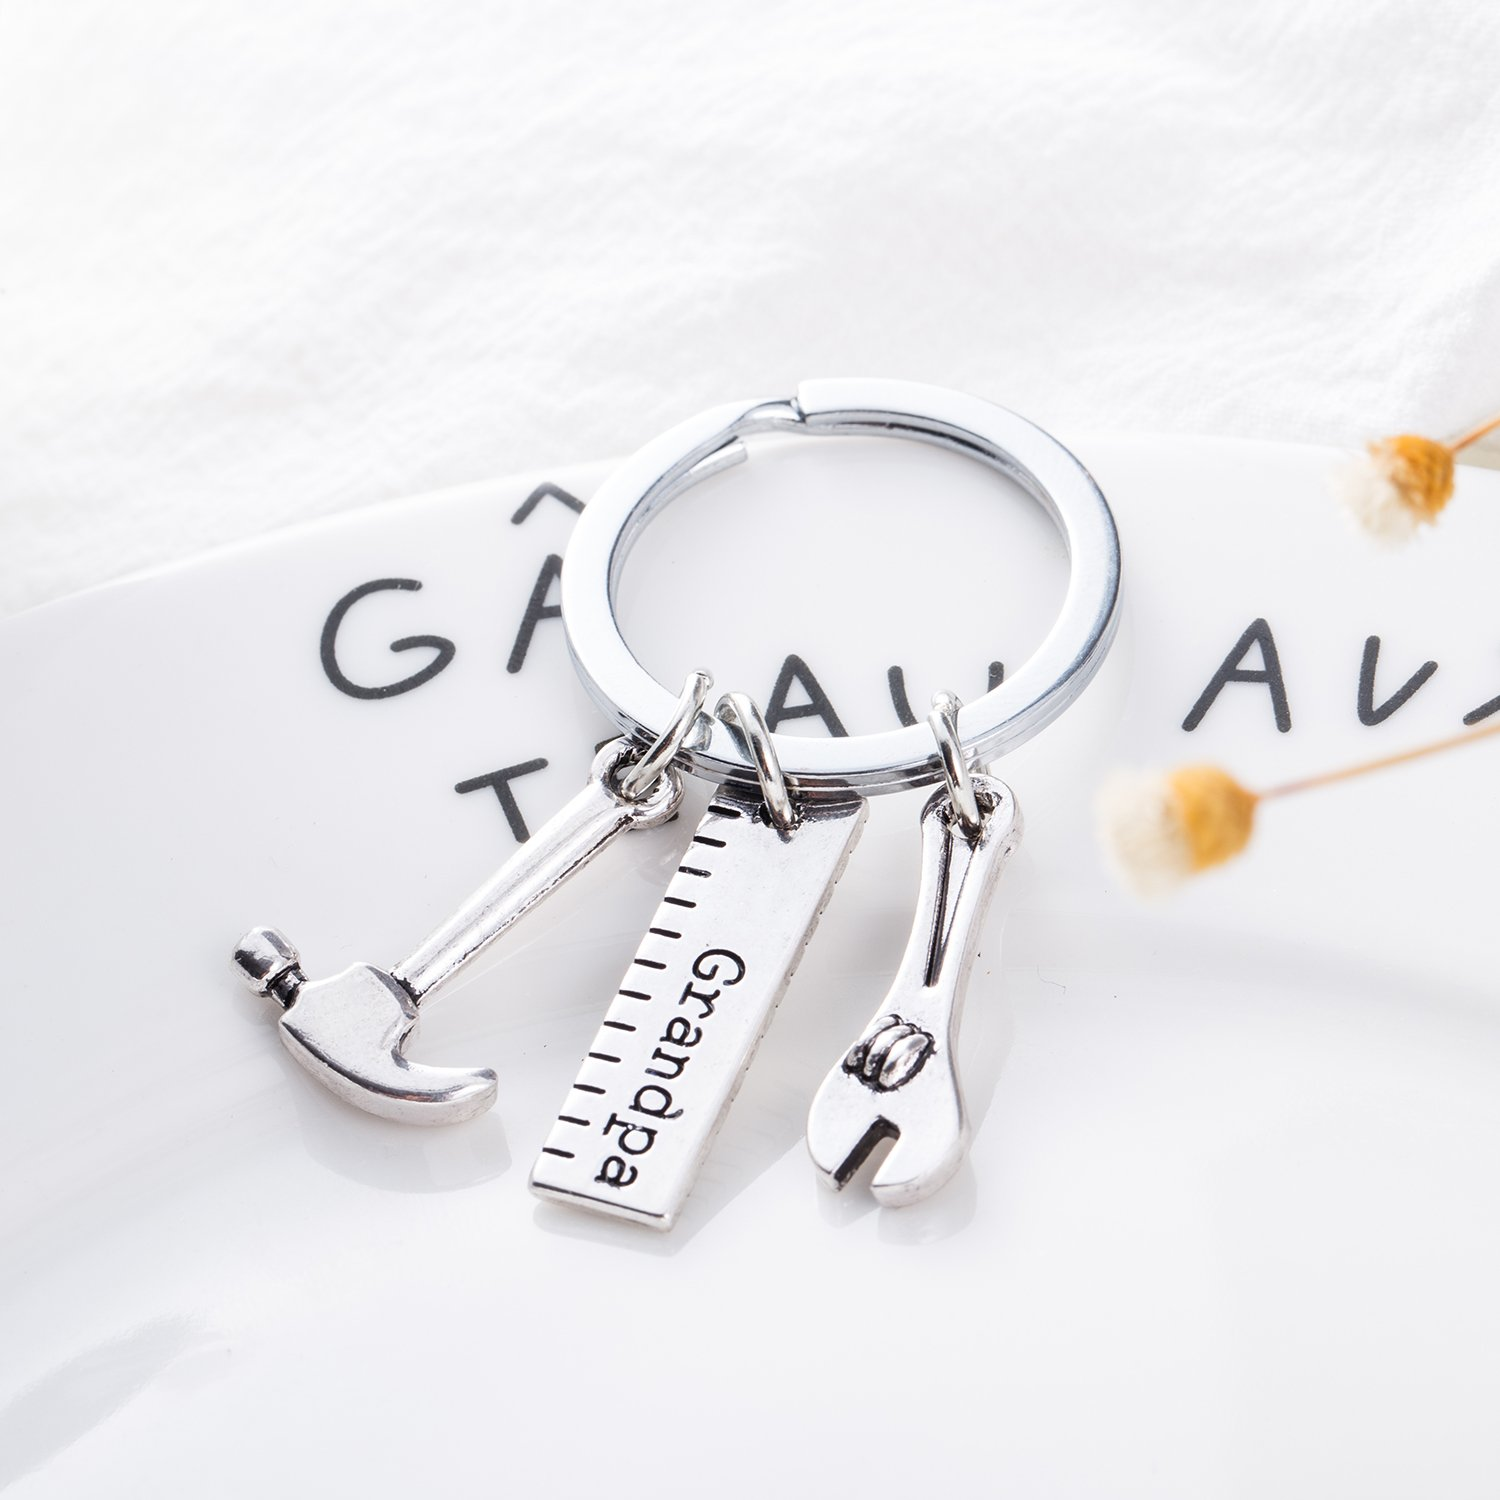 Fathers Day Gift ELOI Dad Keychain,Christmas Gift,Hammer Wrench Keyring Grandpa Christmas Gift from daughter or Son